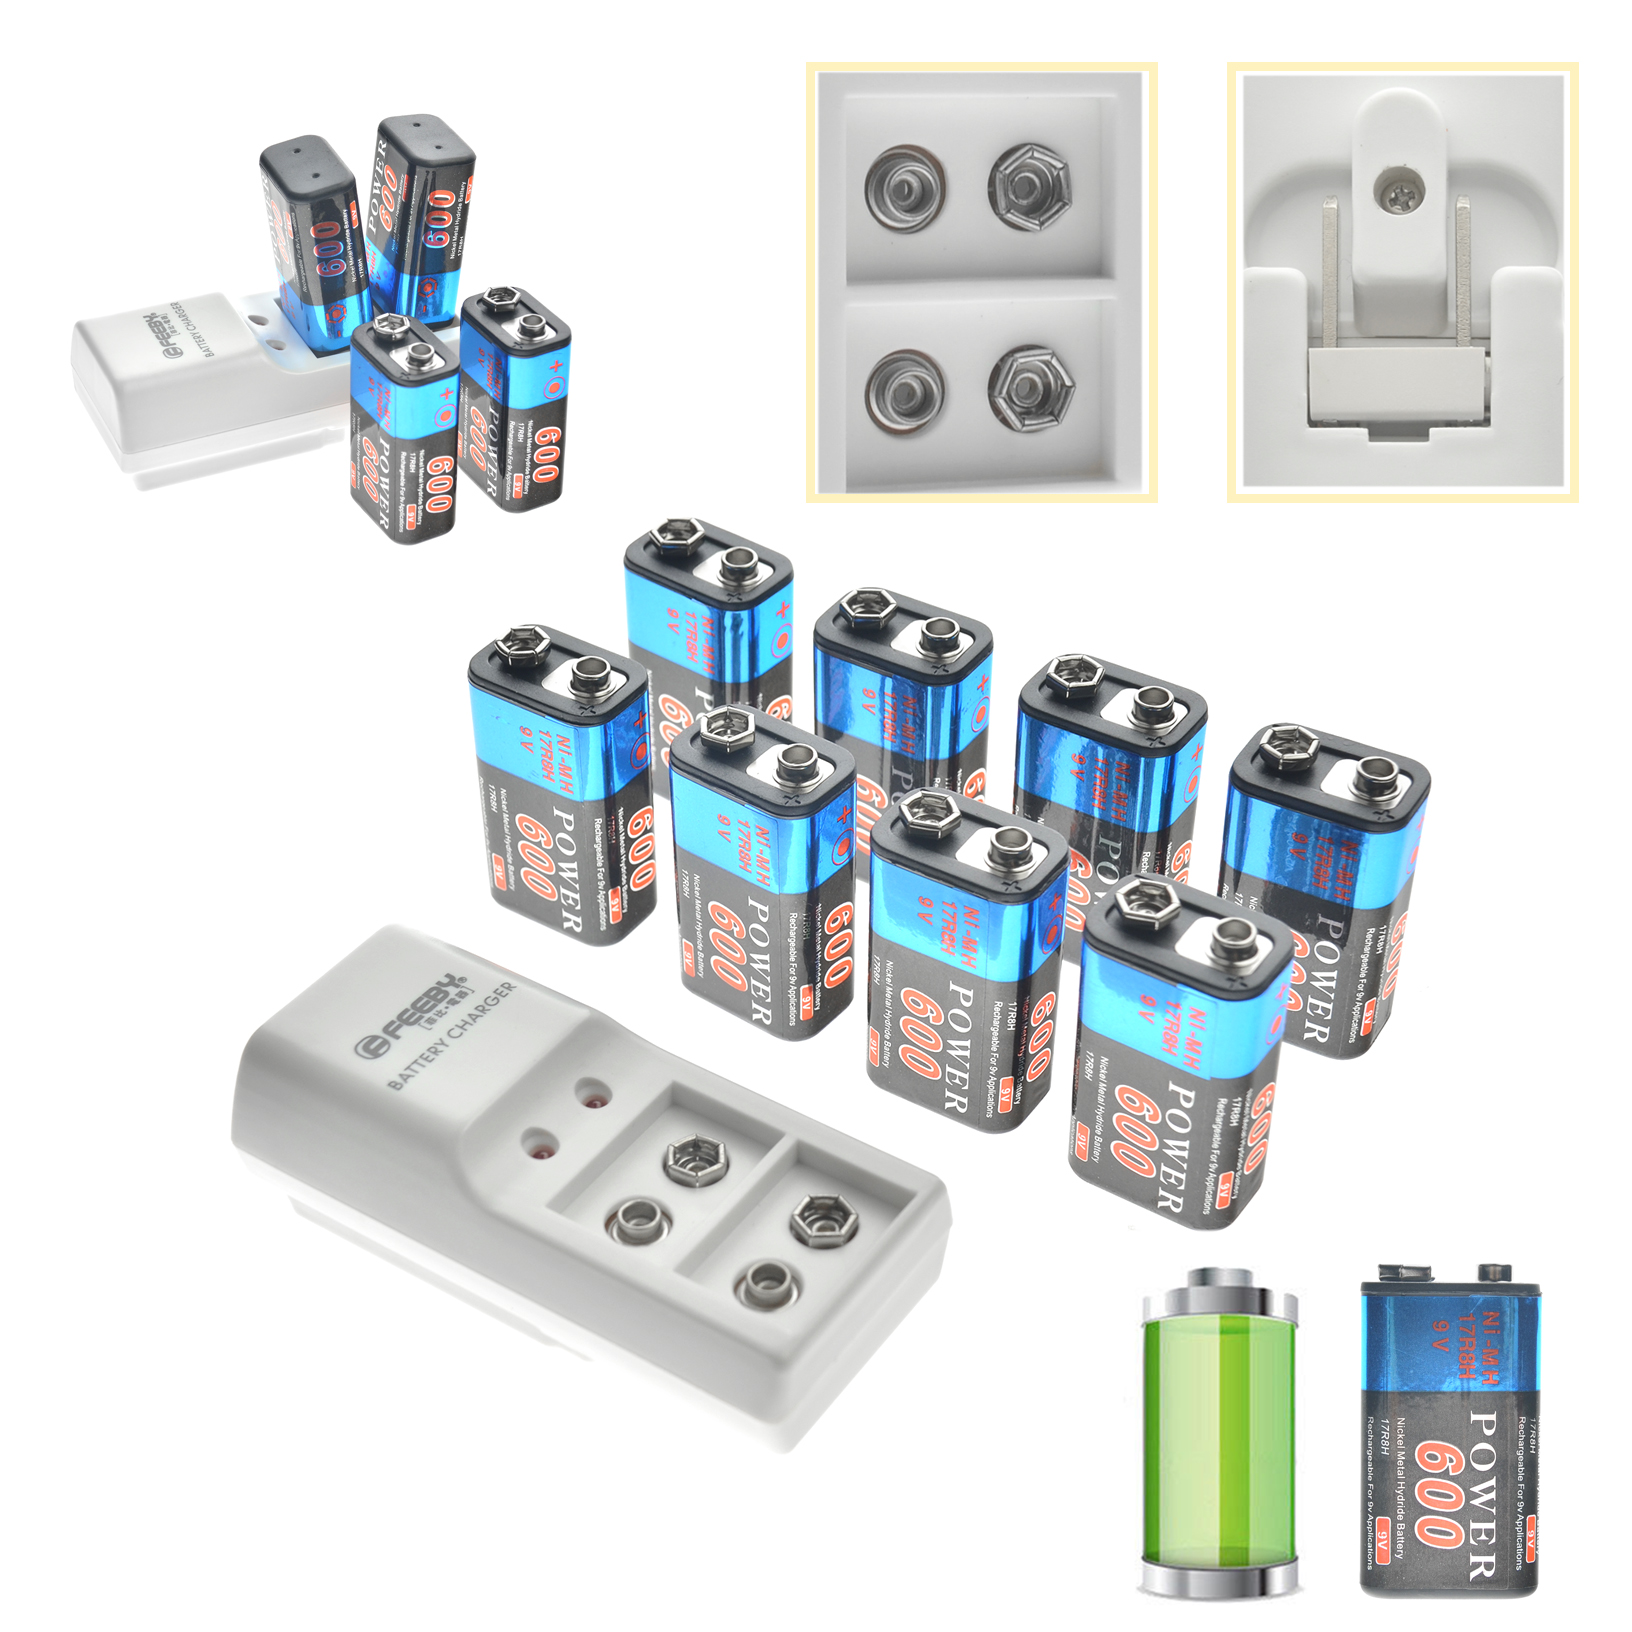 2/4/6/8pcs 9V 6F22 600mAh NI-MH Rechargeable Batteries & 9 Volt Charger High Volume US creepy comics volume 2 page 9